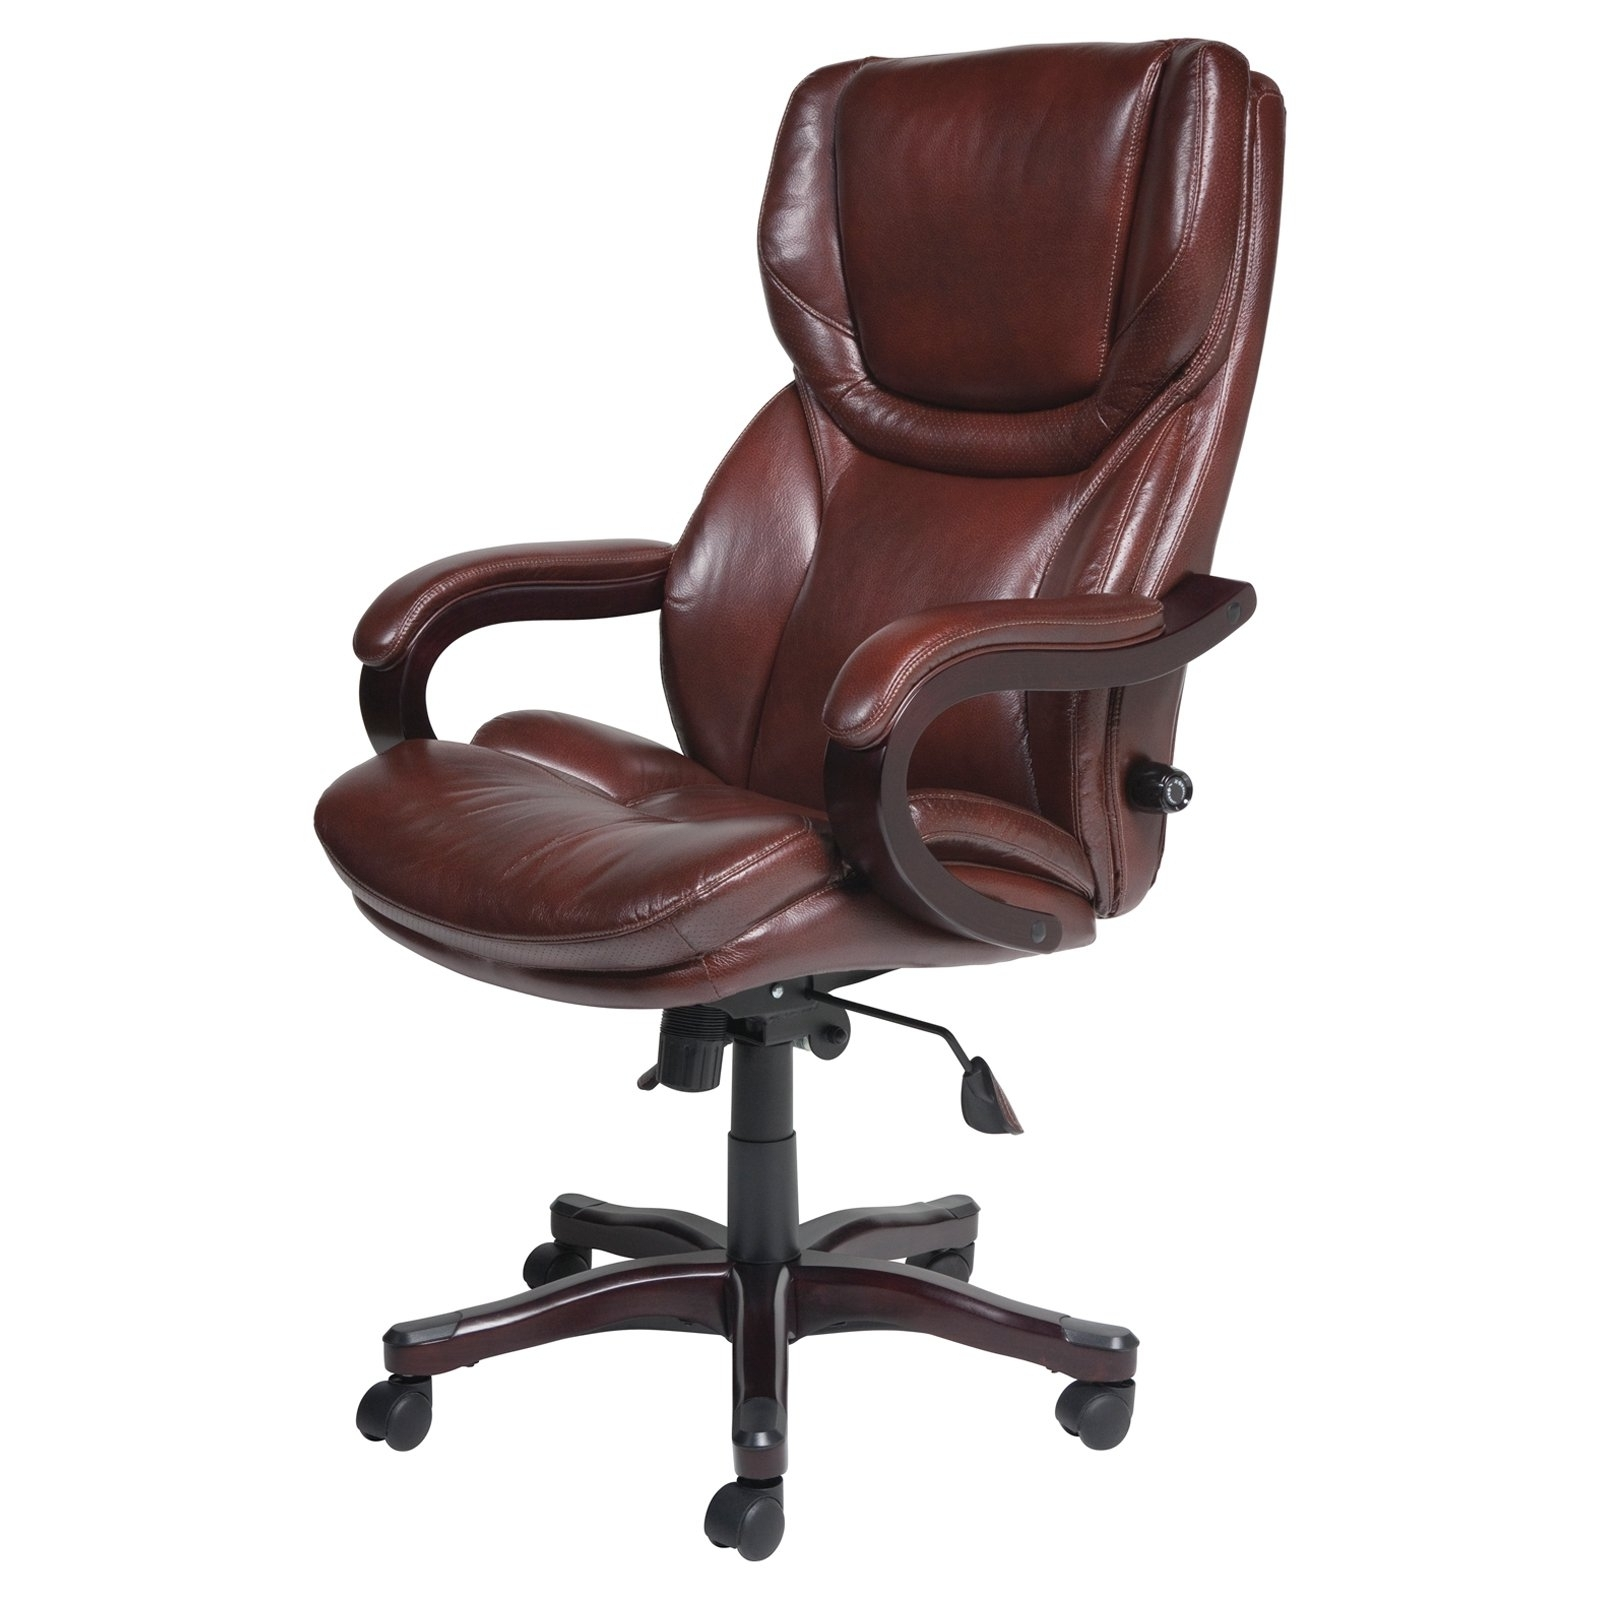 2018 Chair : Ergonomic Black Leather Executive Office Chair Verona Inside Executive Office Chairs (View 11 of 20)